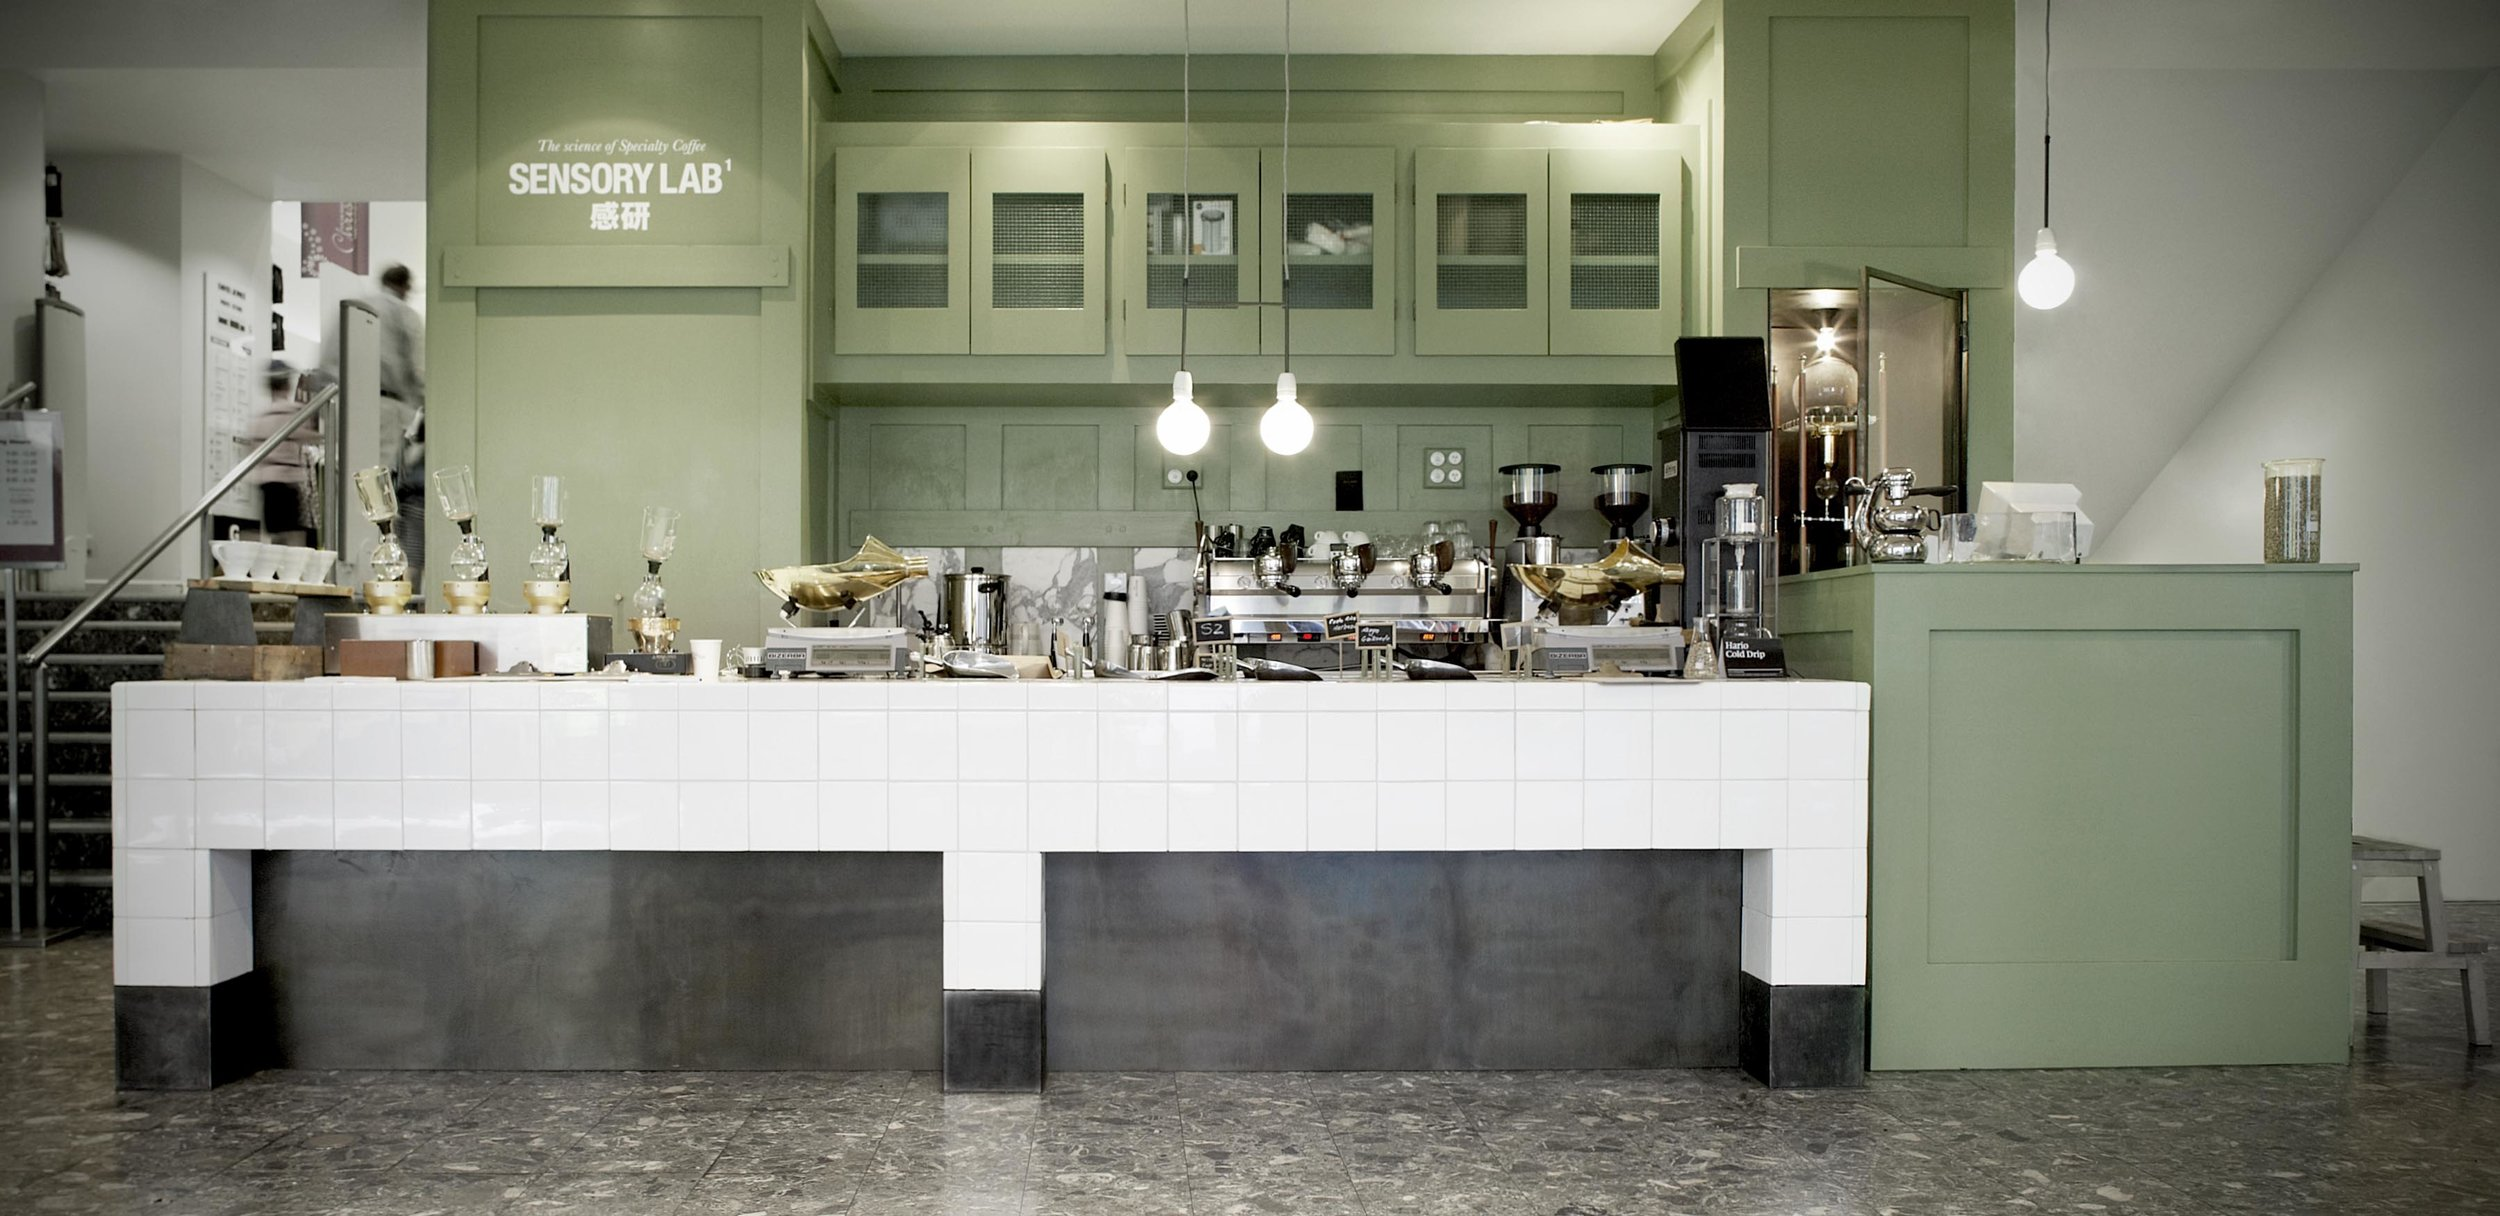 The Sensory Lab at David Jones - some of Melbourne's best coffee smack bang in the middle of fashion retail